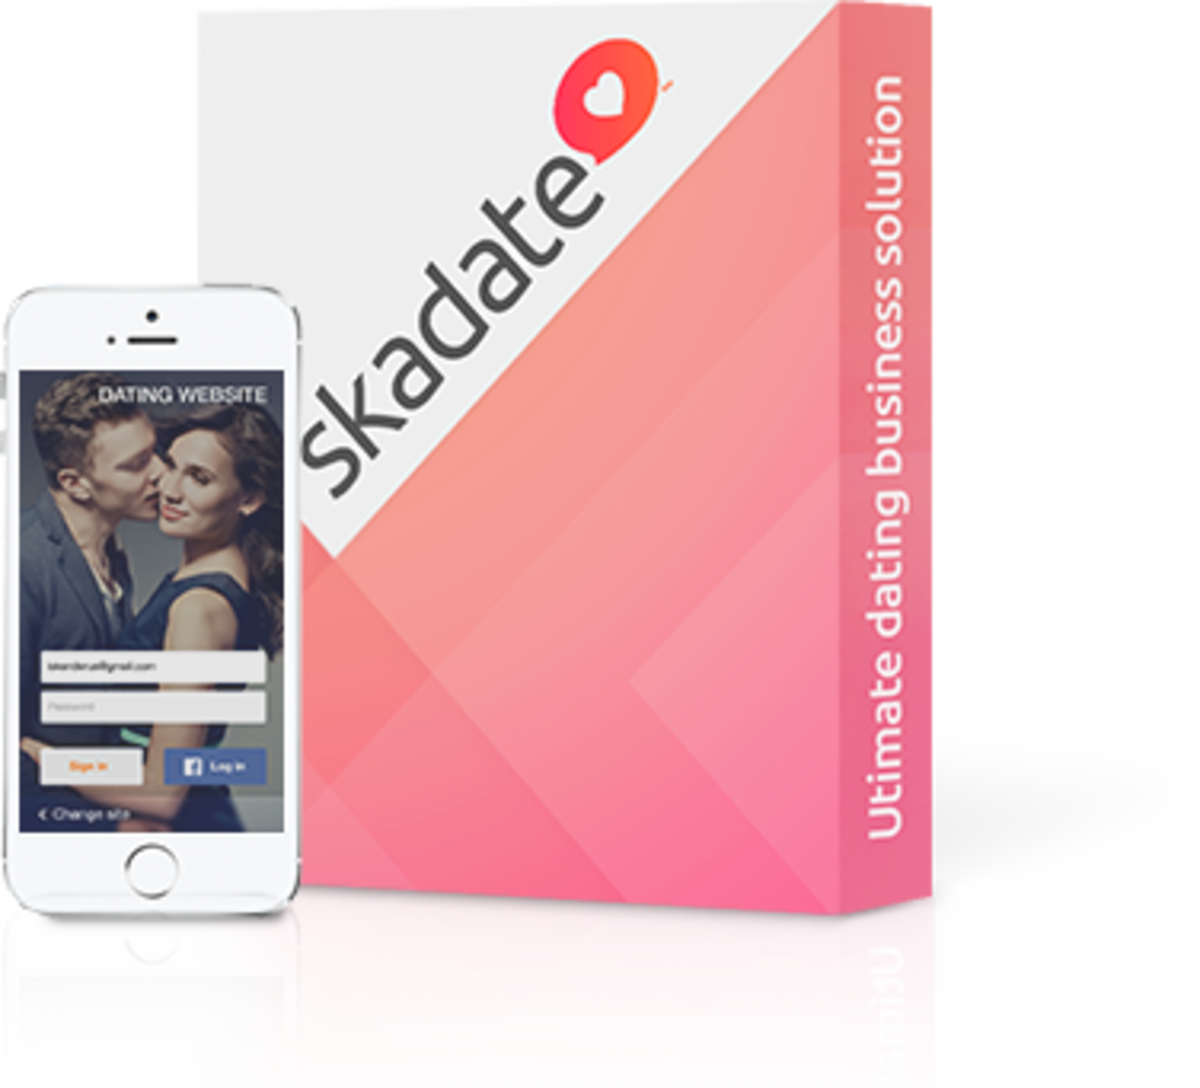 Best online dating software